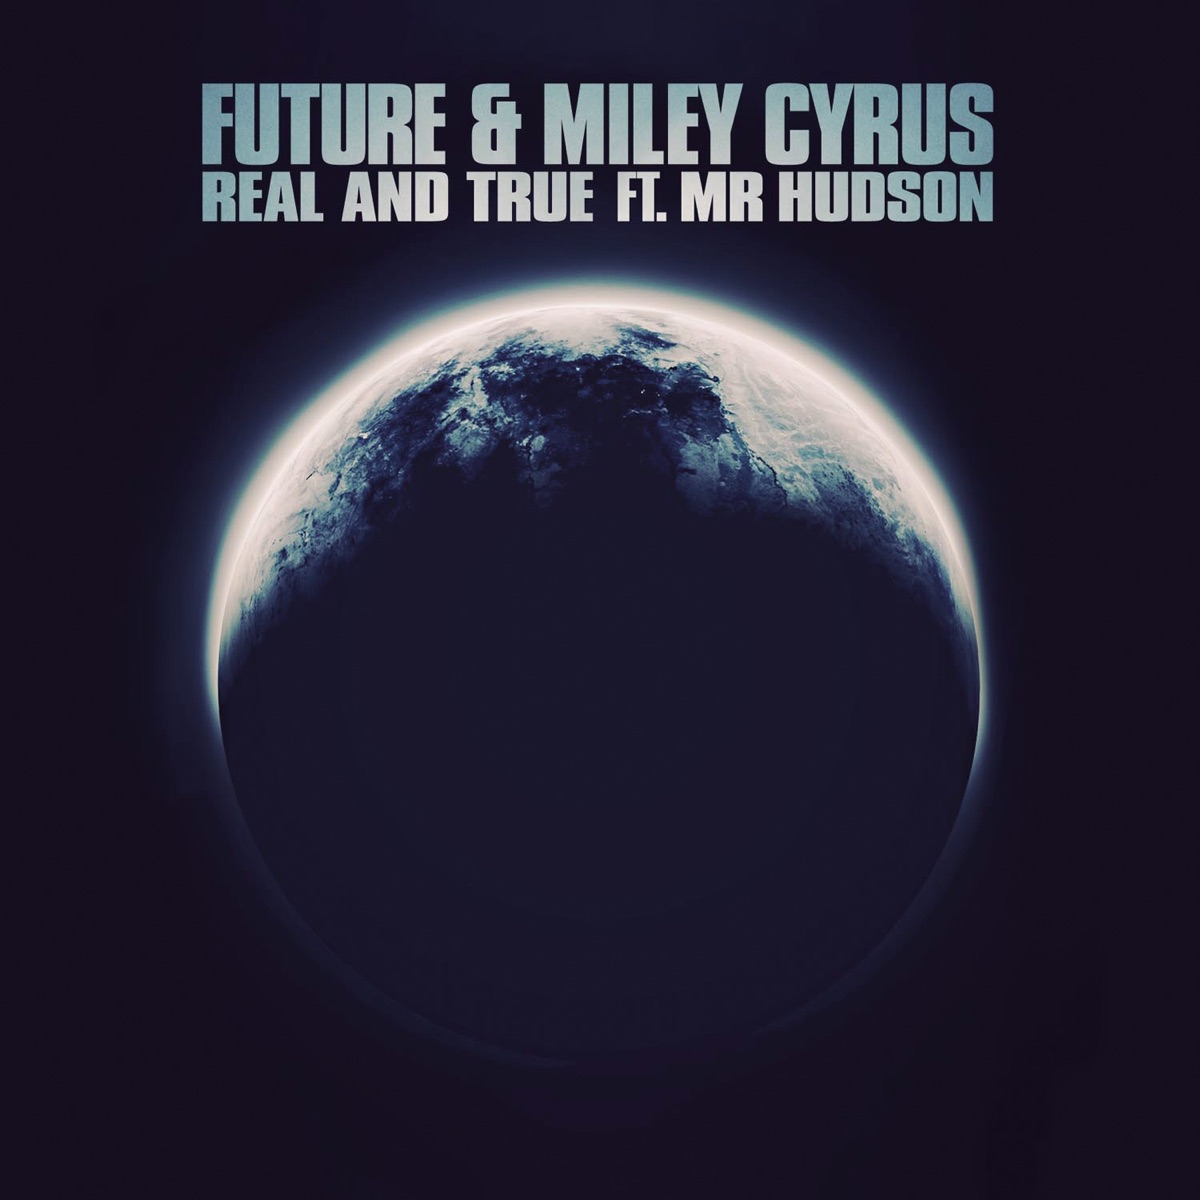 Real and True feat Mr Hudson - Single Future  Miley Cyrus CD cover